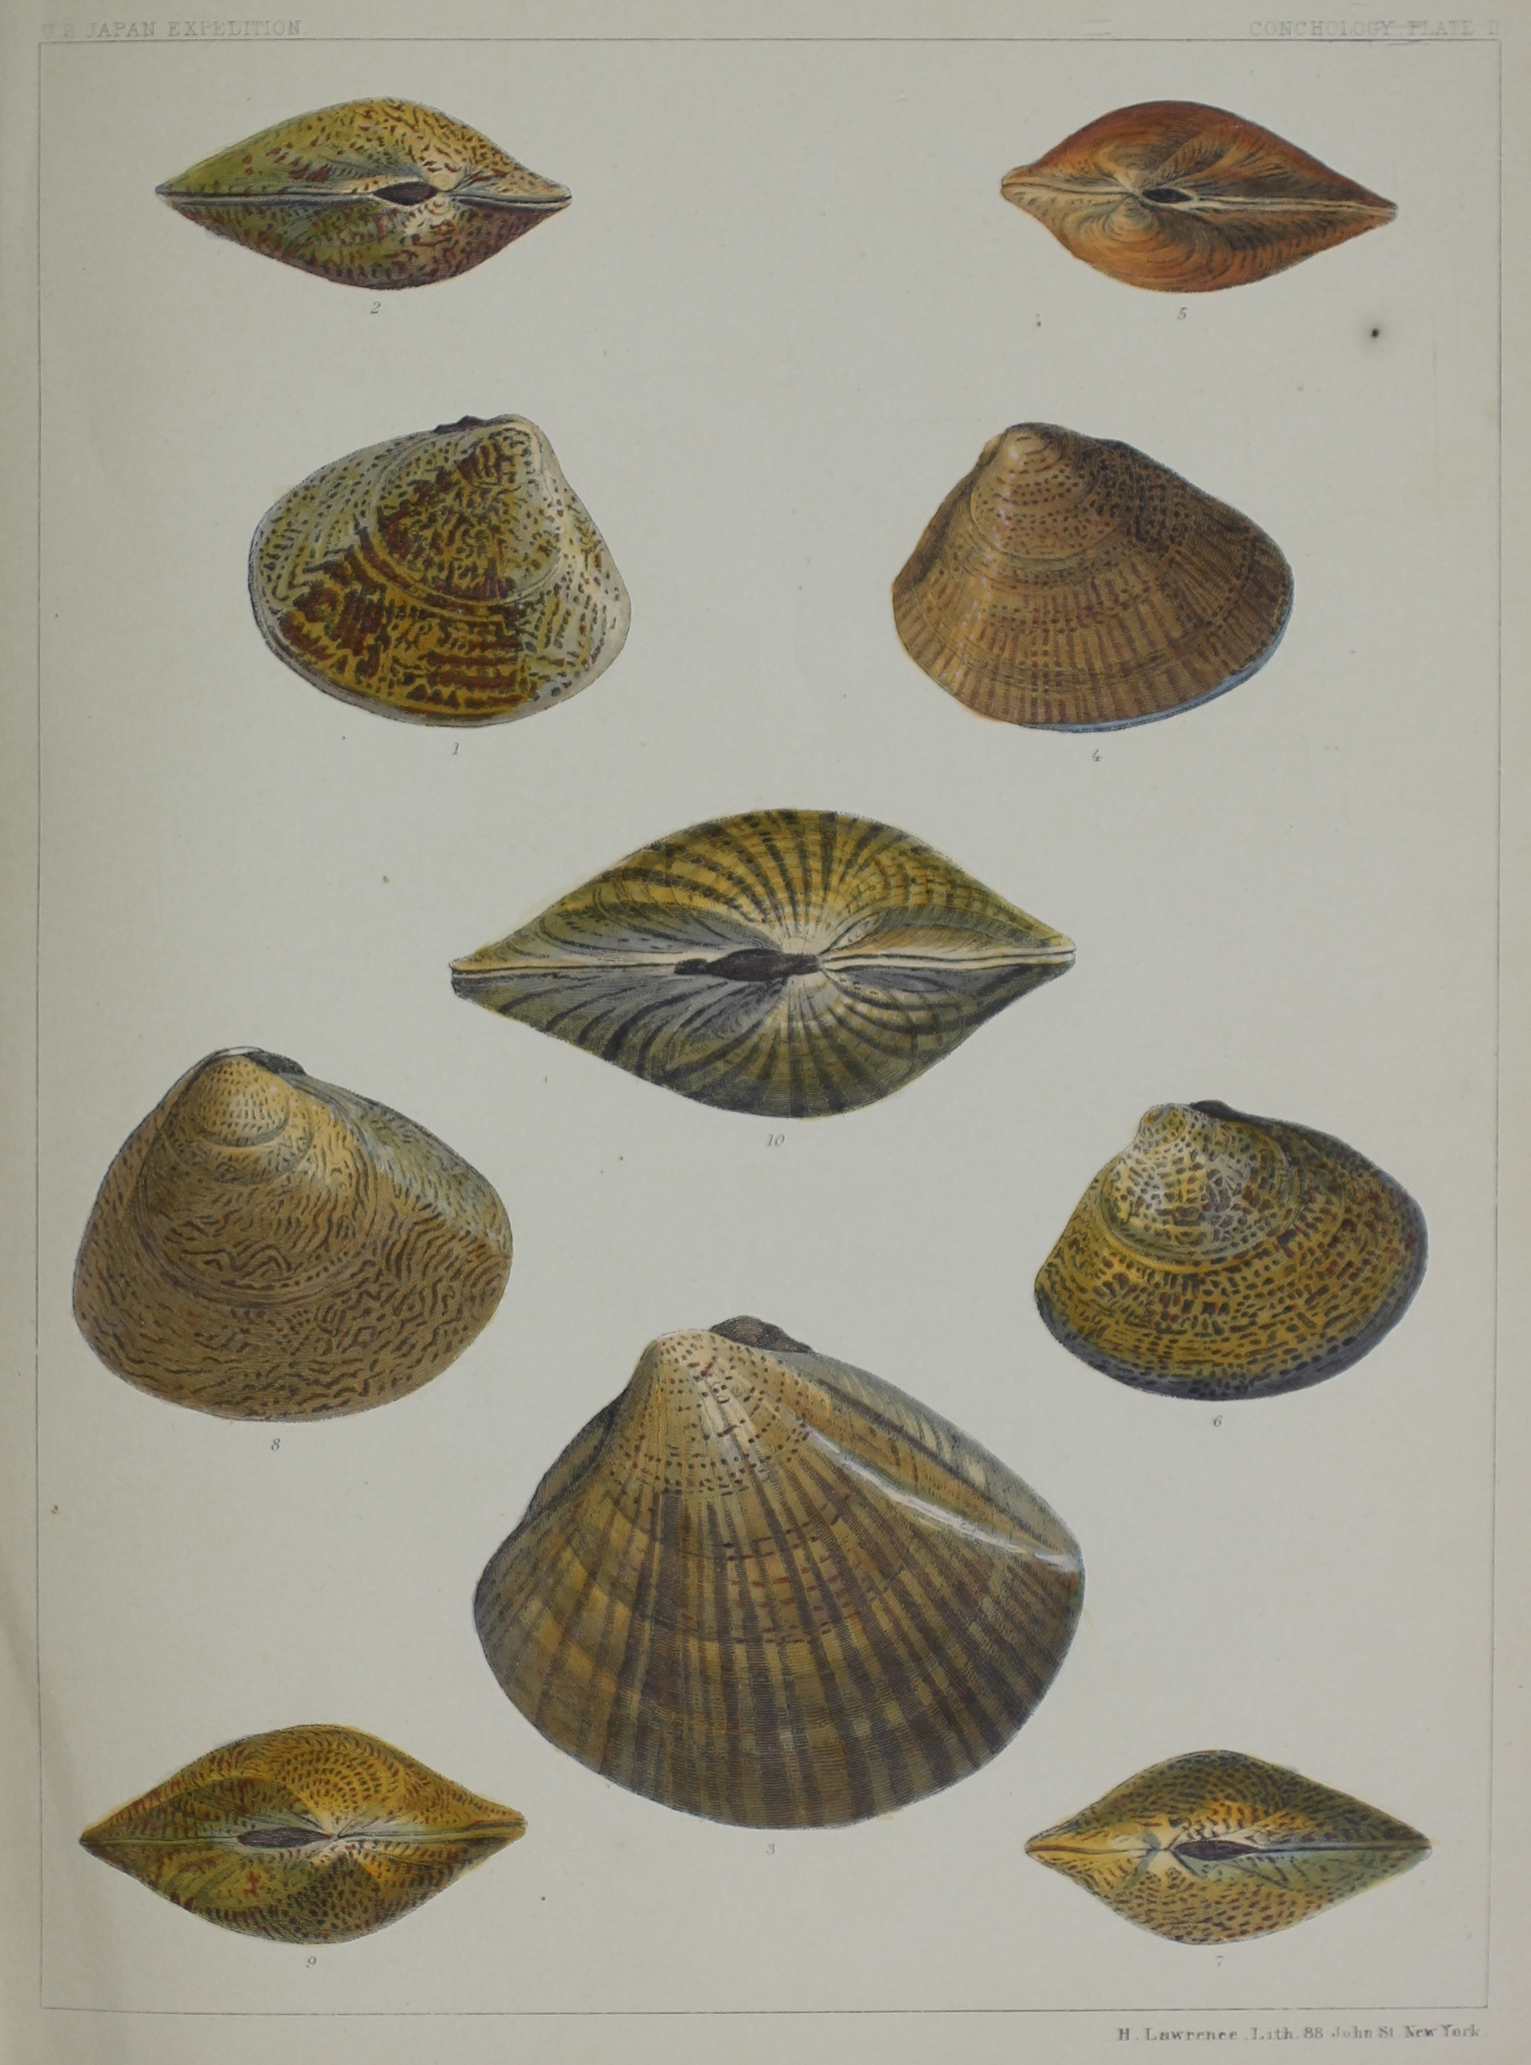 Conchology Plate II. H. Lawrence, Lith. 88 John St. New York